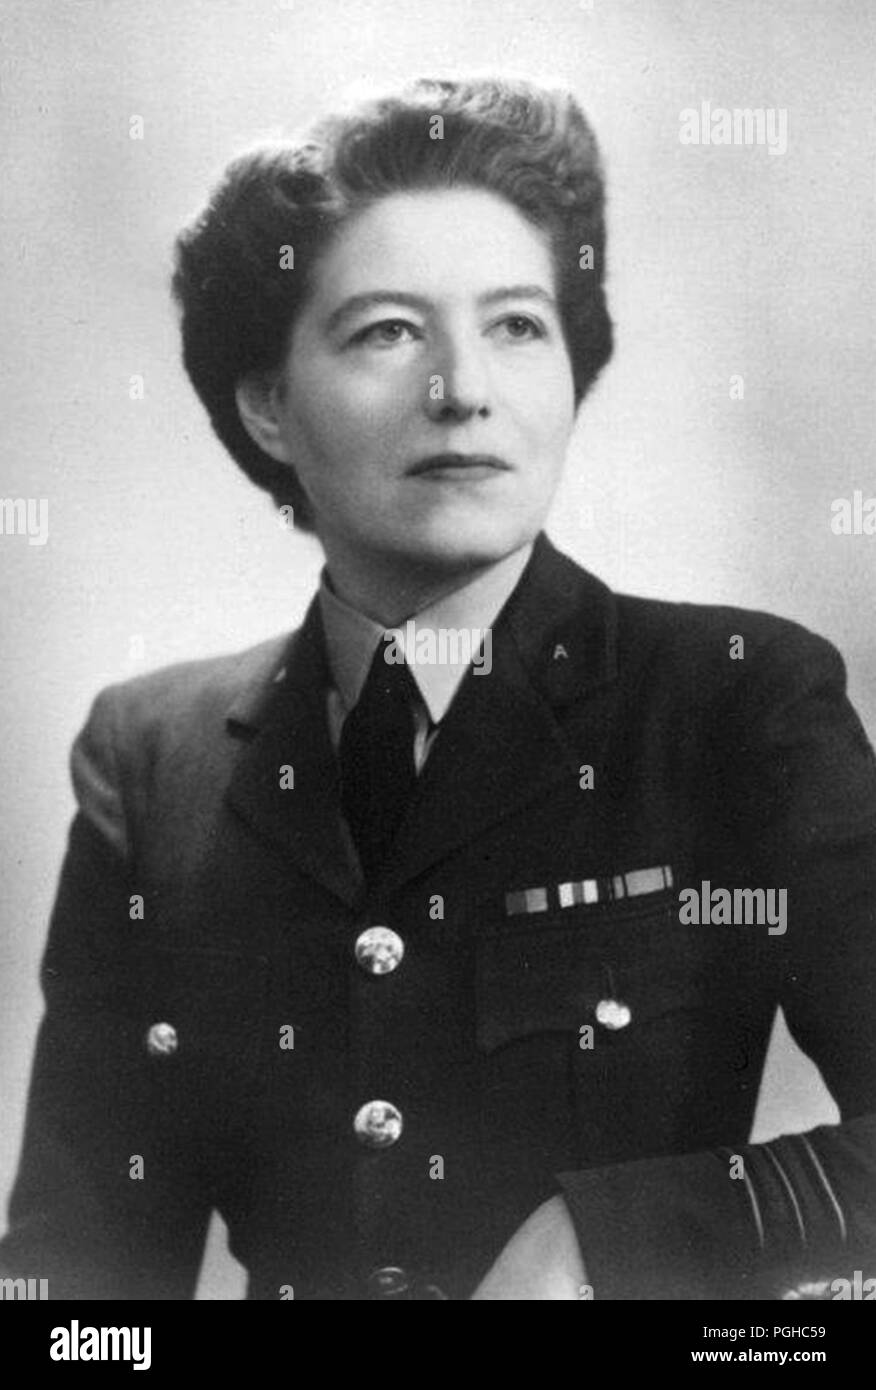 Vera May Atkins, (1908 – 2000) British intelligence officer who worked in the French Section of the Special Operations Executive (SOE) from 1941 to 1945 during the Second World War. - Stock Image